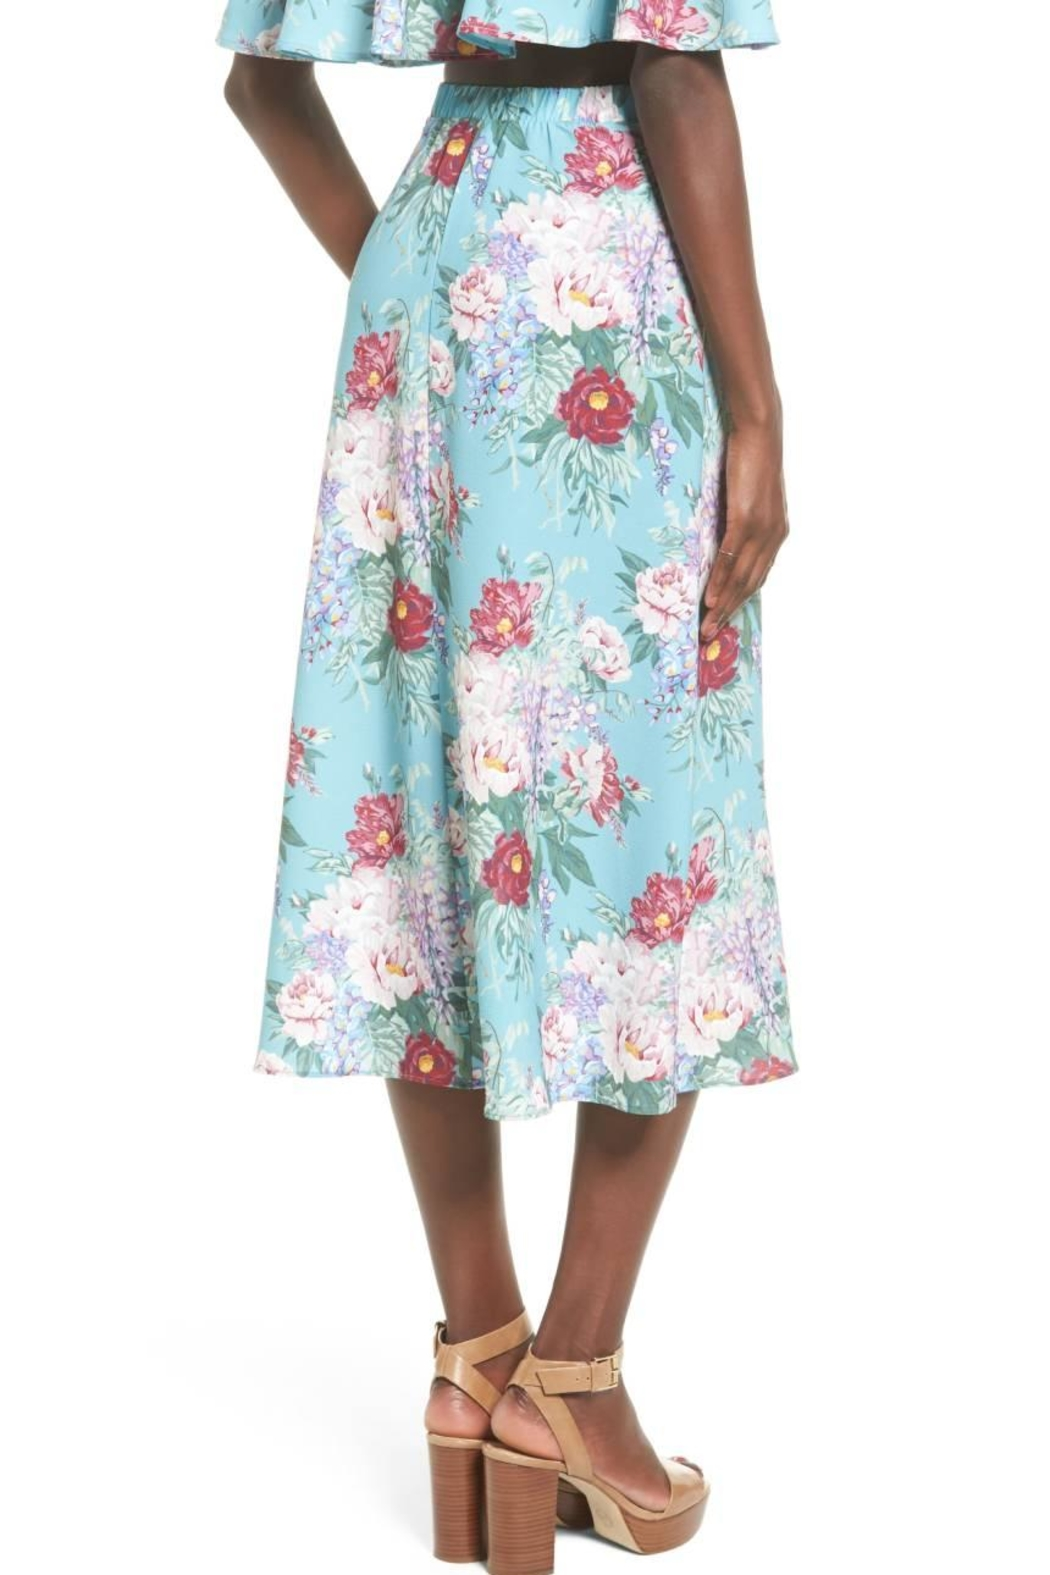 Show Me Your Mumu Mint Floral Skirt - Side Cropped Image